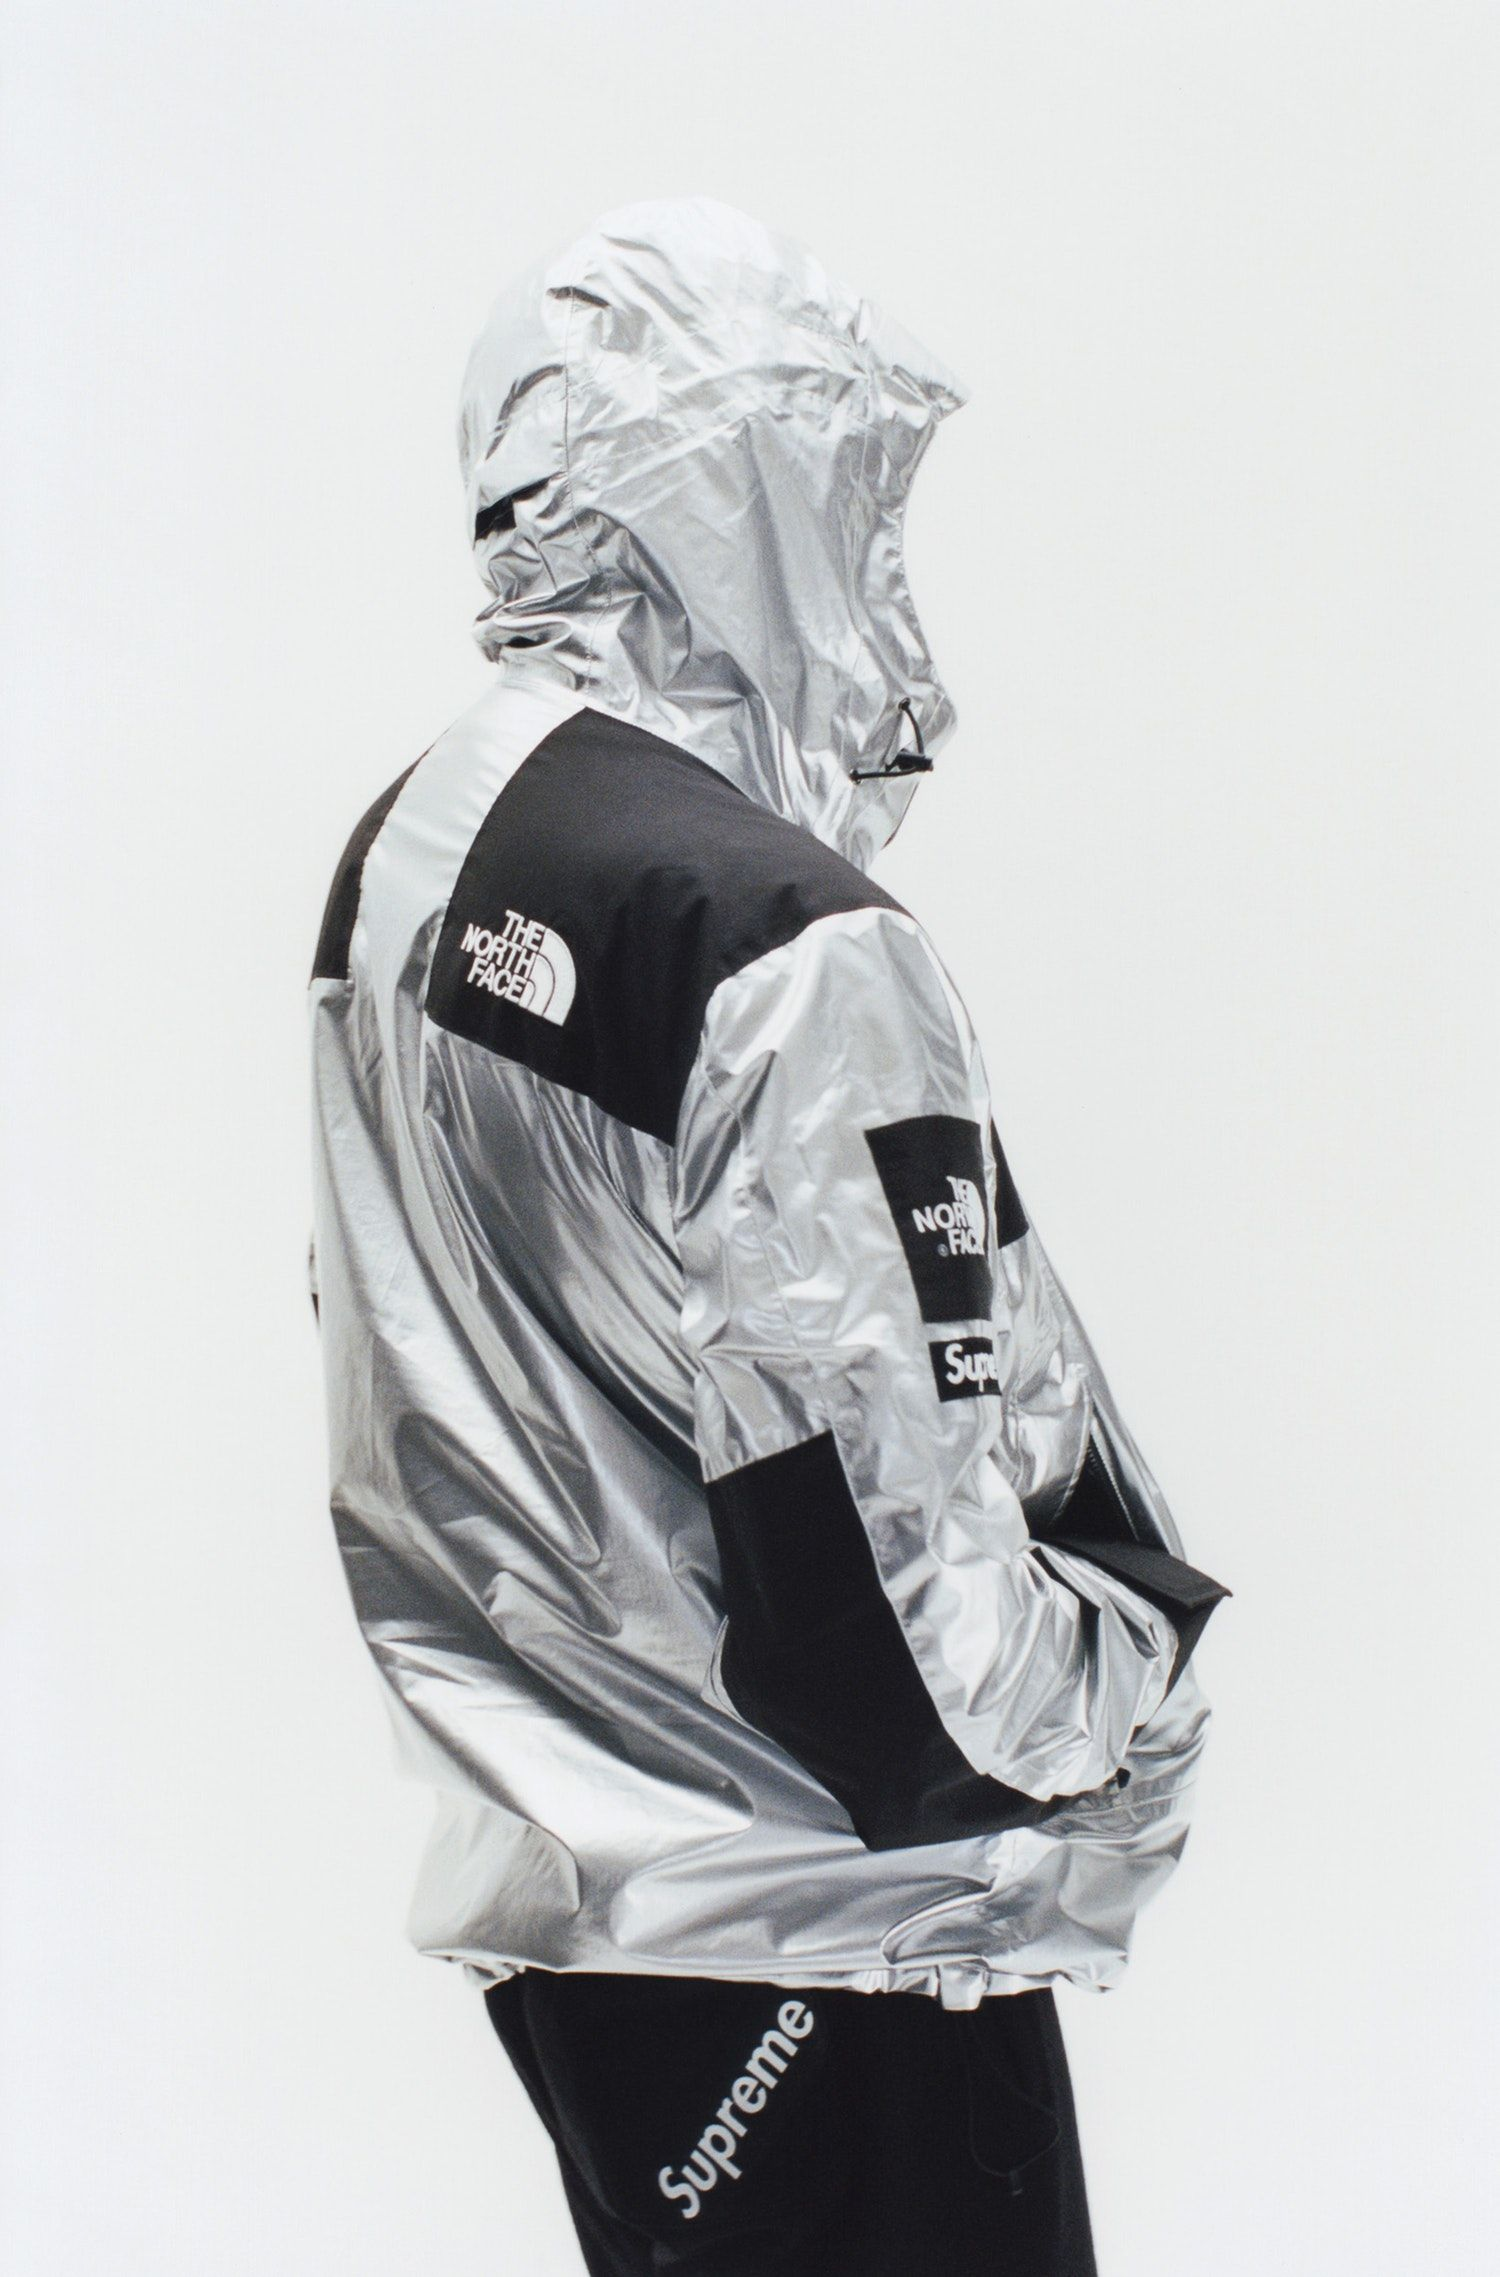 da86da67a Supreme x The North Face Spring 2018 Metallic Collection | Jackets ...